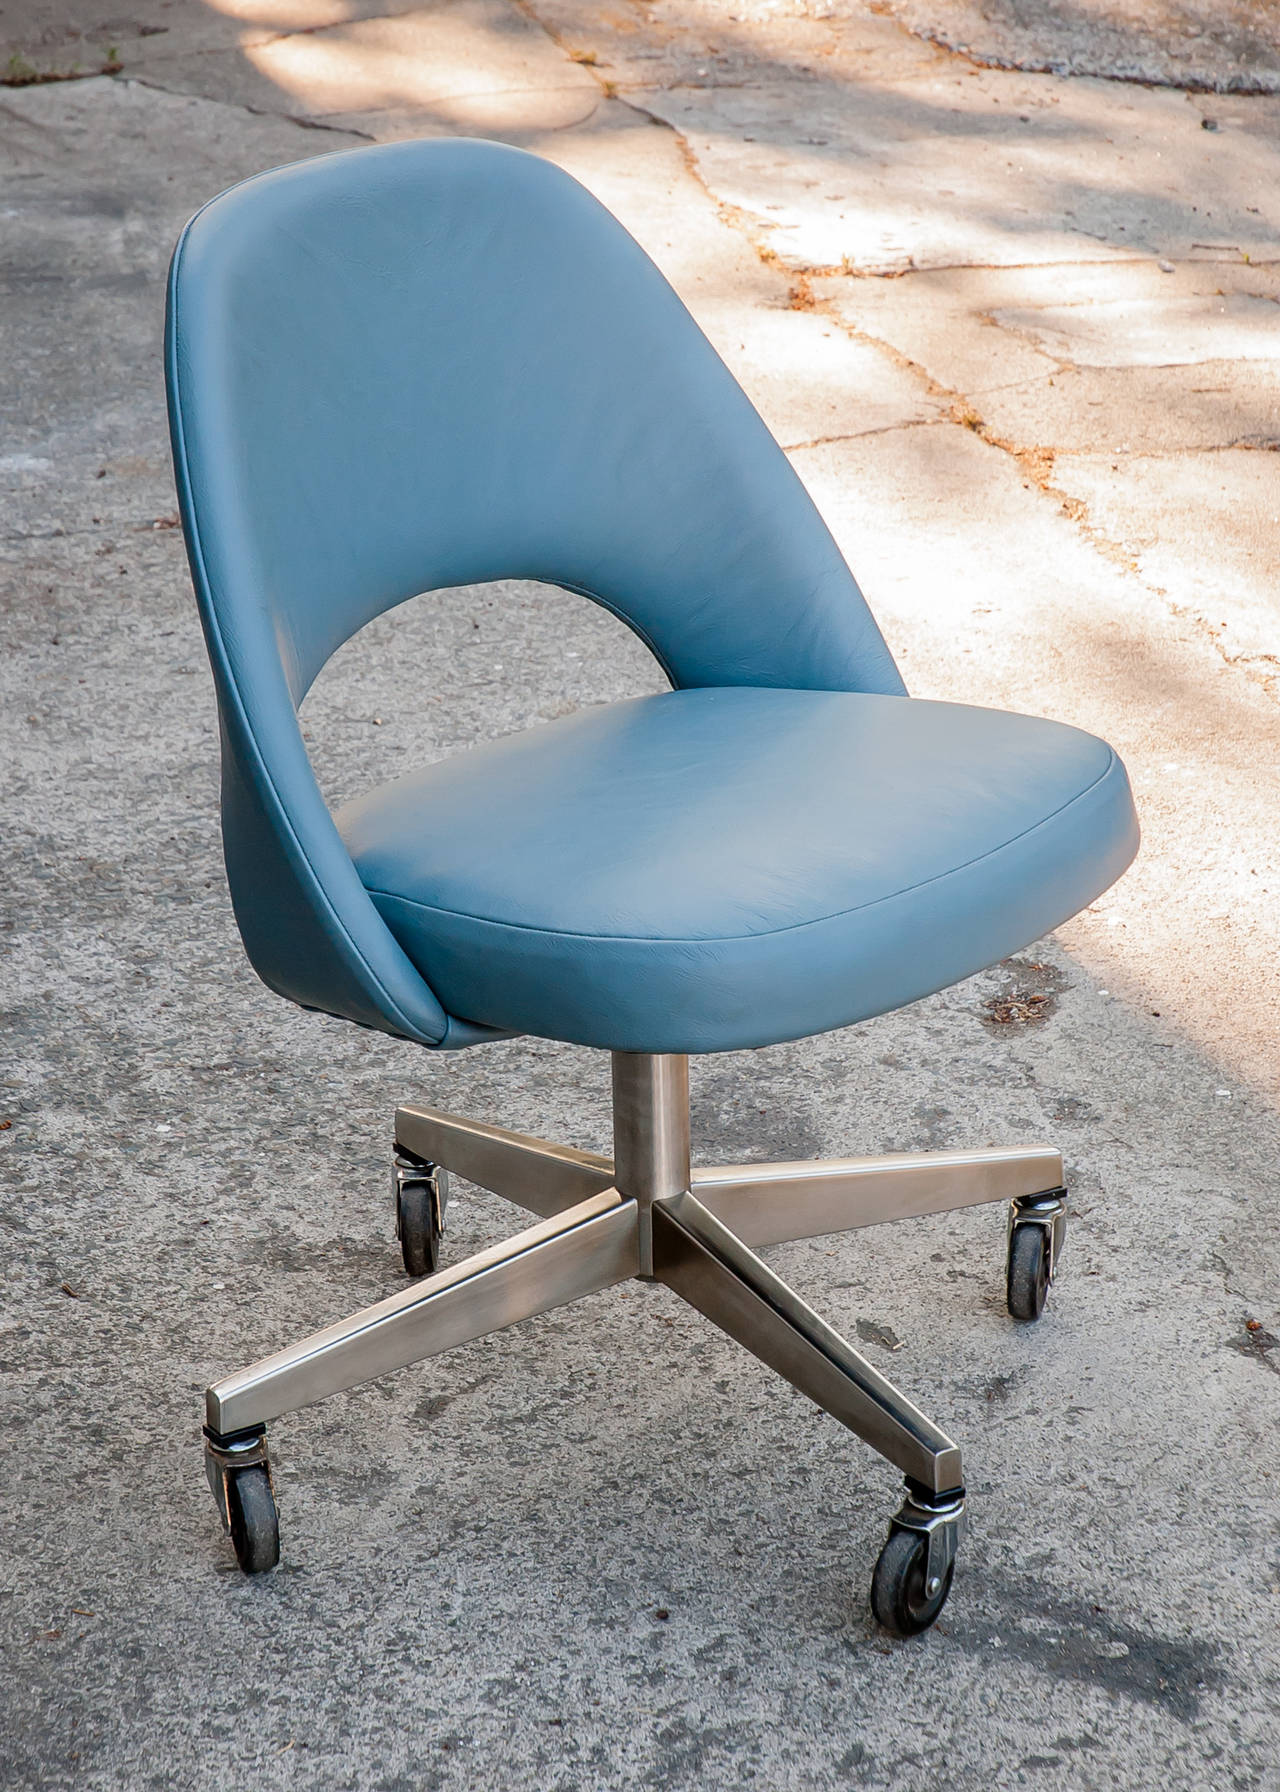 Vintage Saarinen Leather Desk Chair with Casters at 1stdibs